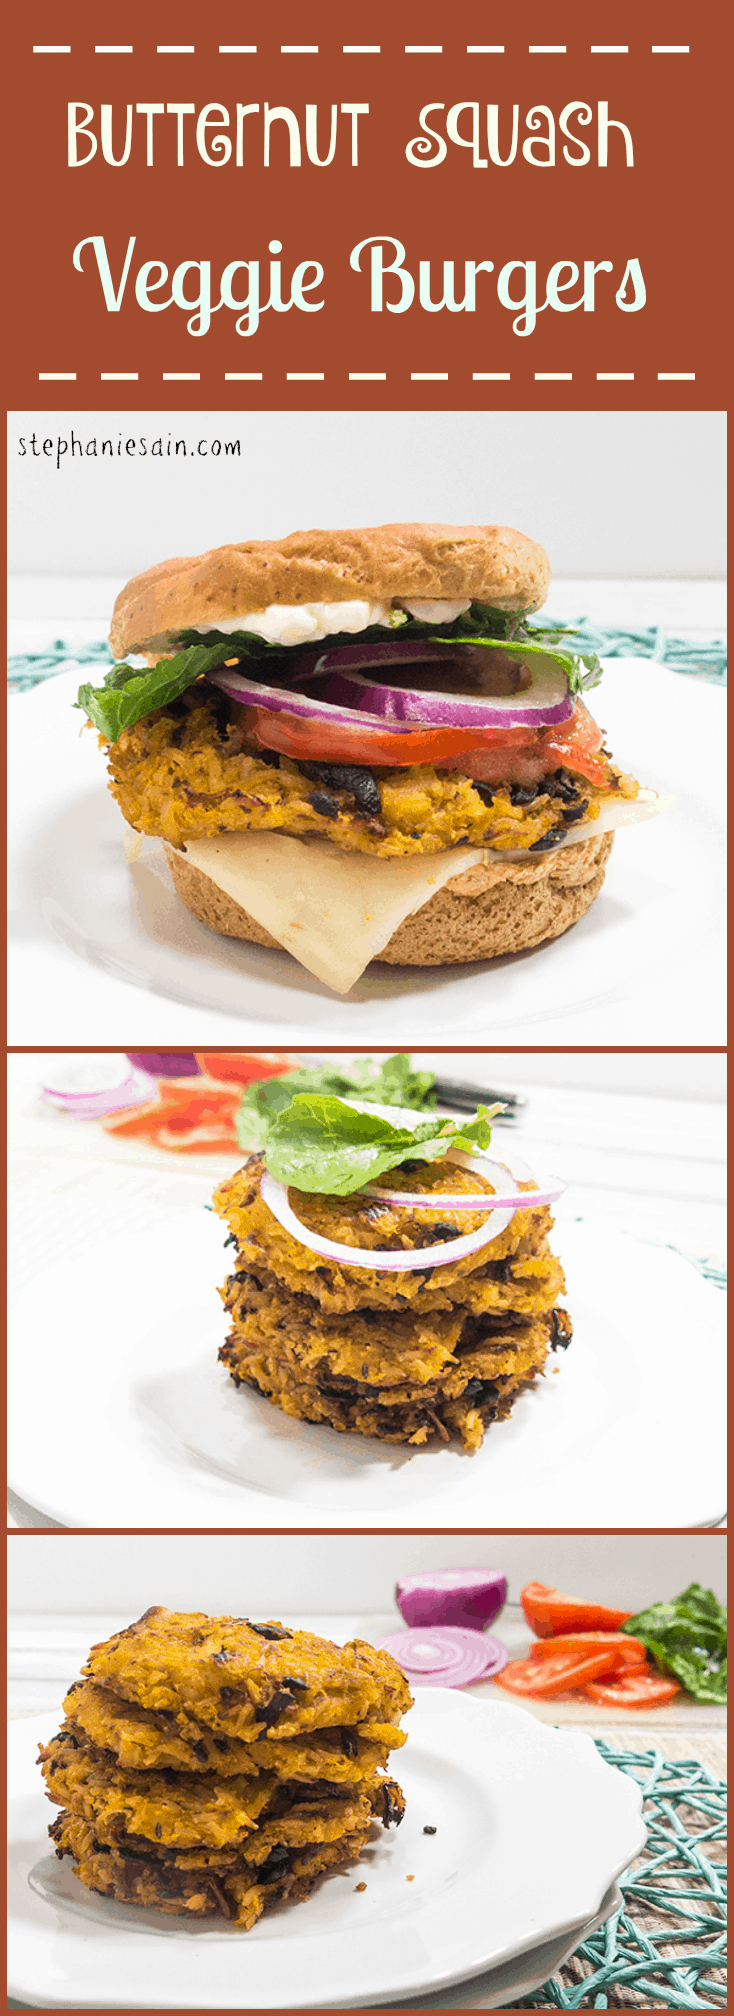 Butternut Squash Veggie Burgers are a tasty, healthy, vegan and gluten free burger. Great with all your favorite burger toppings.